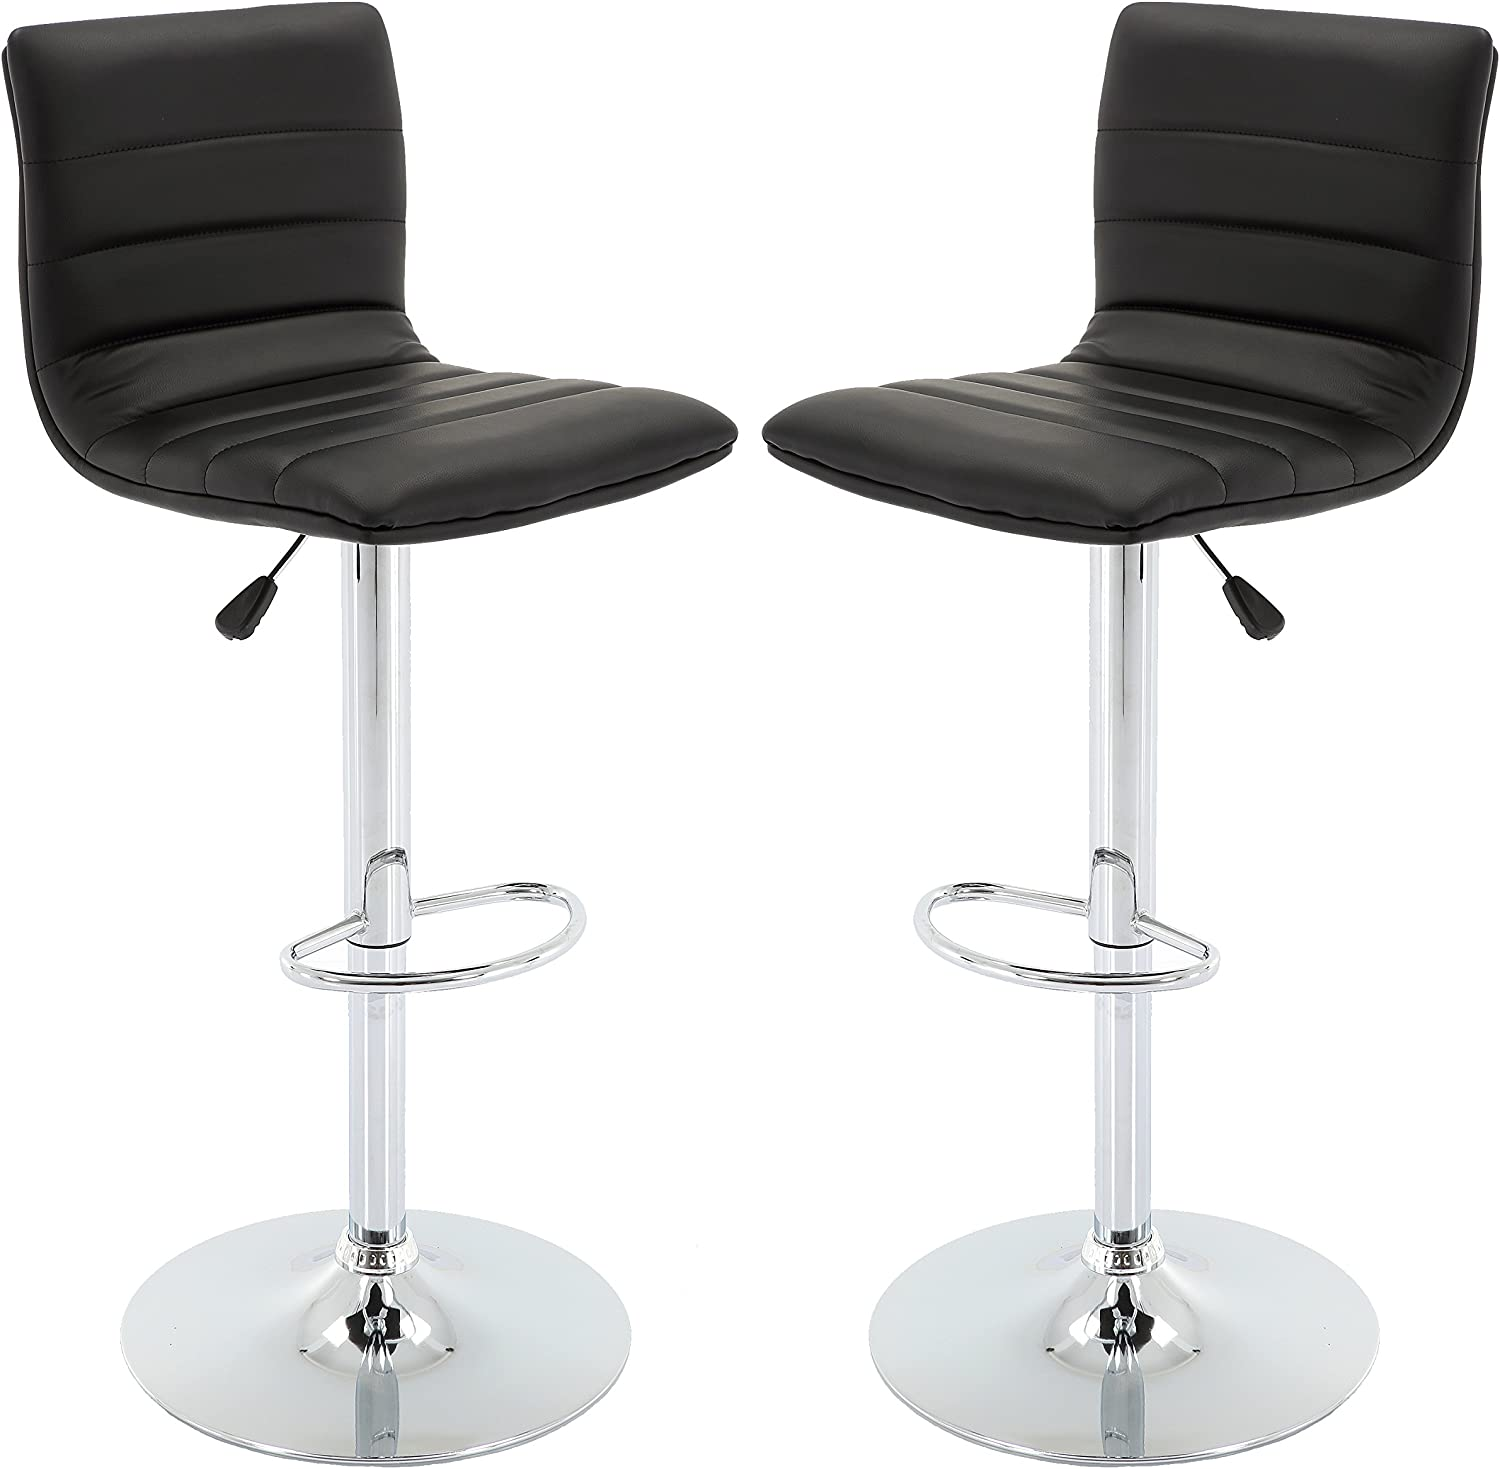 Vogue Furniture Direct Adjustable Leather Barstool, Black-VF1581024 Set of 2